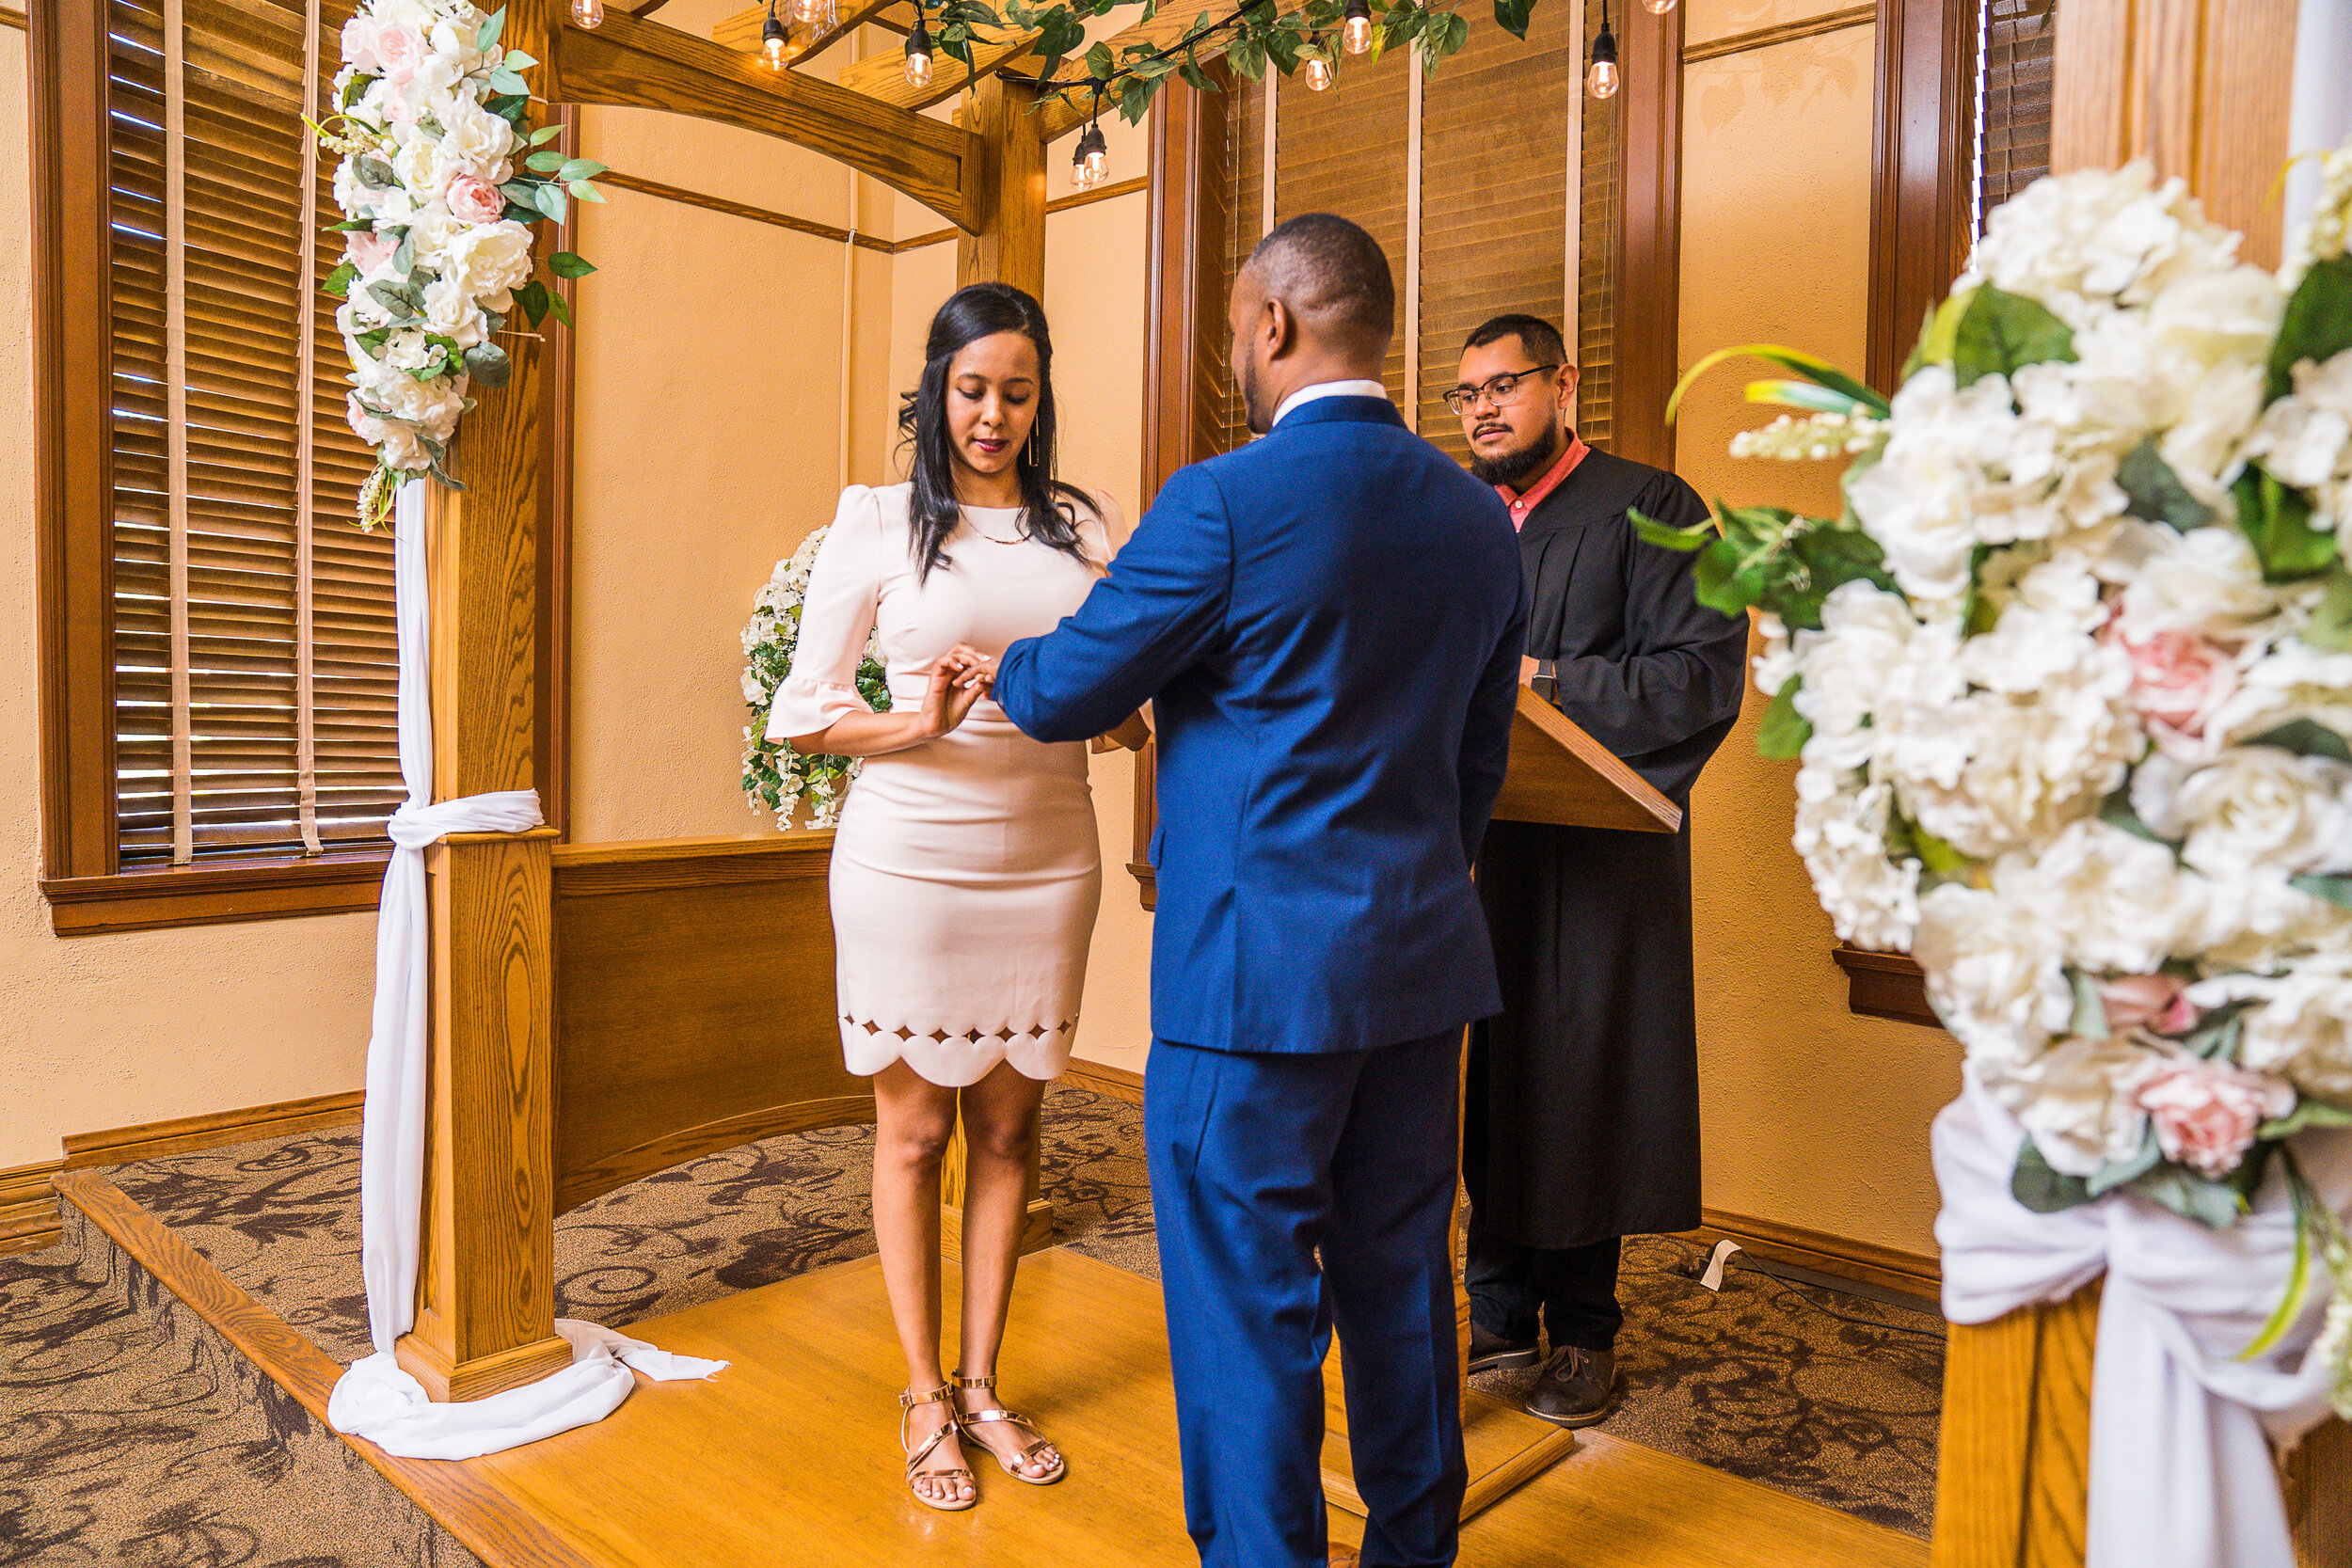 sewit-elopement-orange-county-santa-ana-courthouse-3.jpg